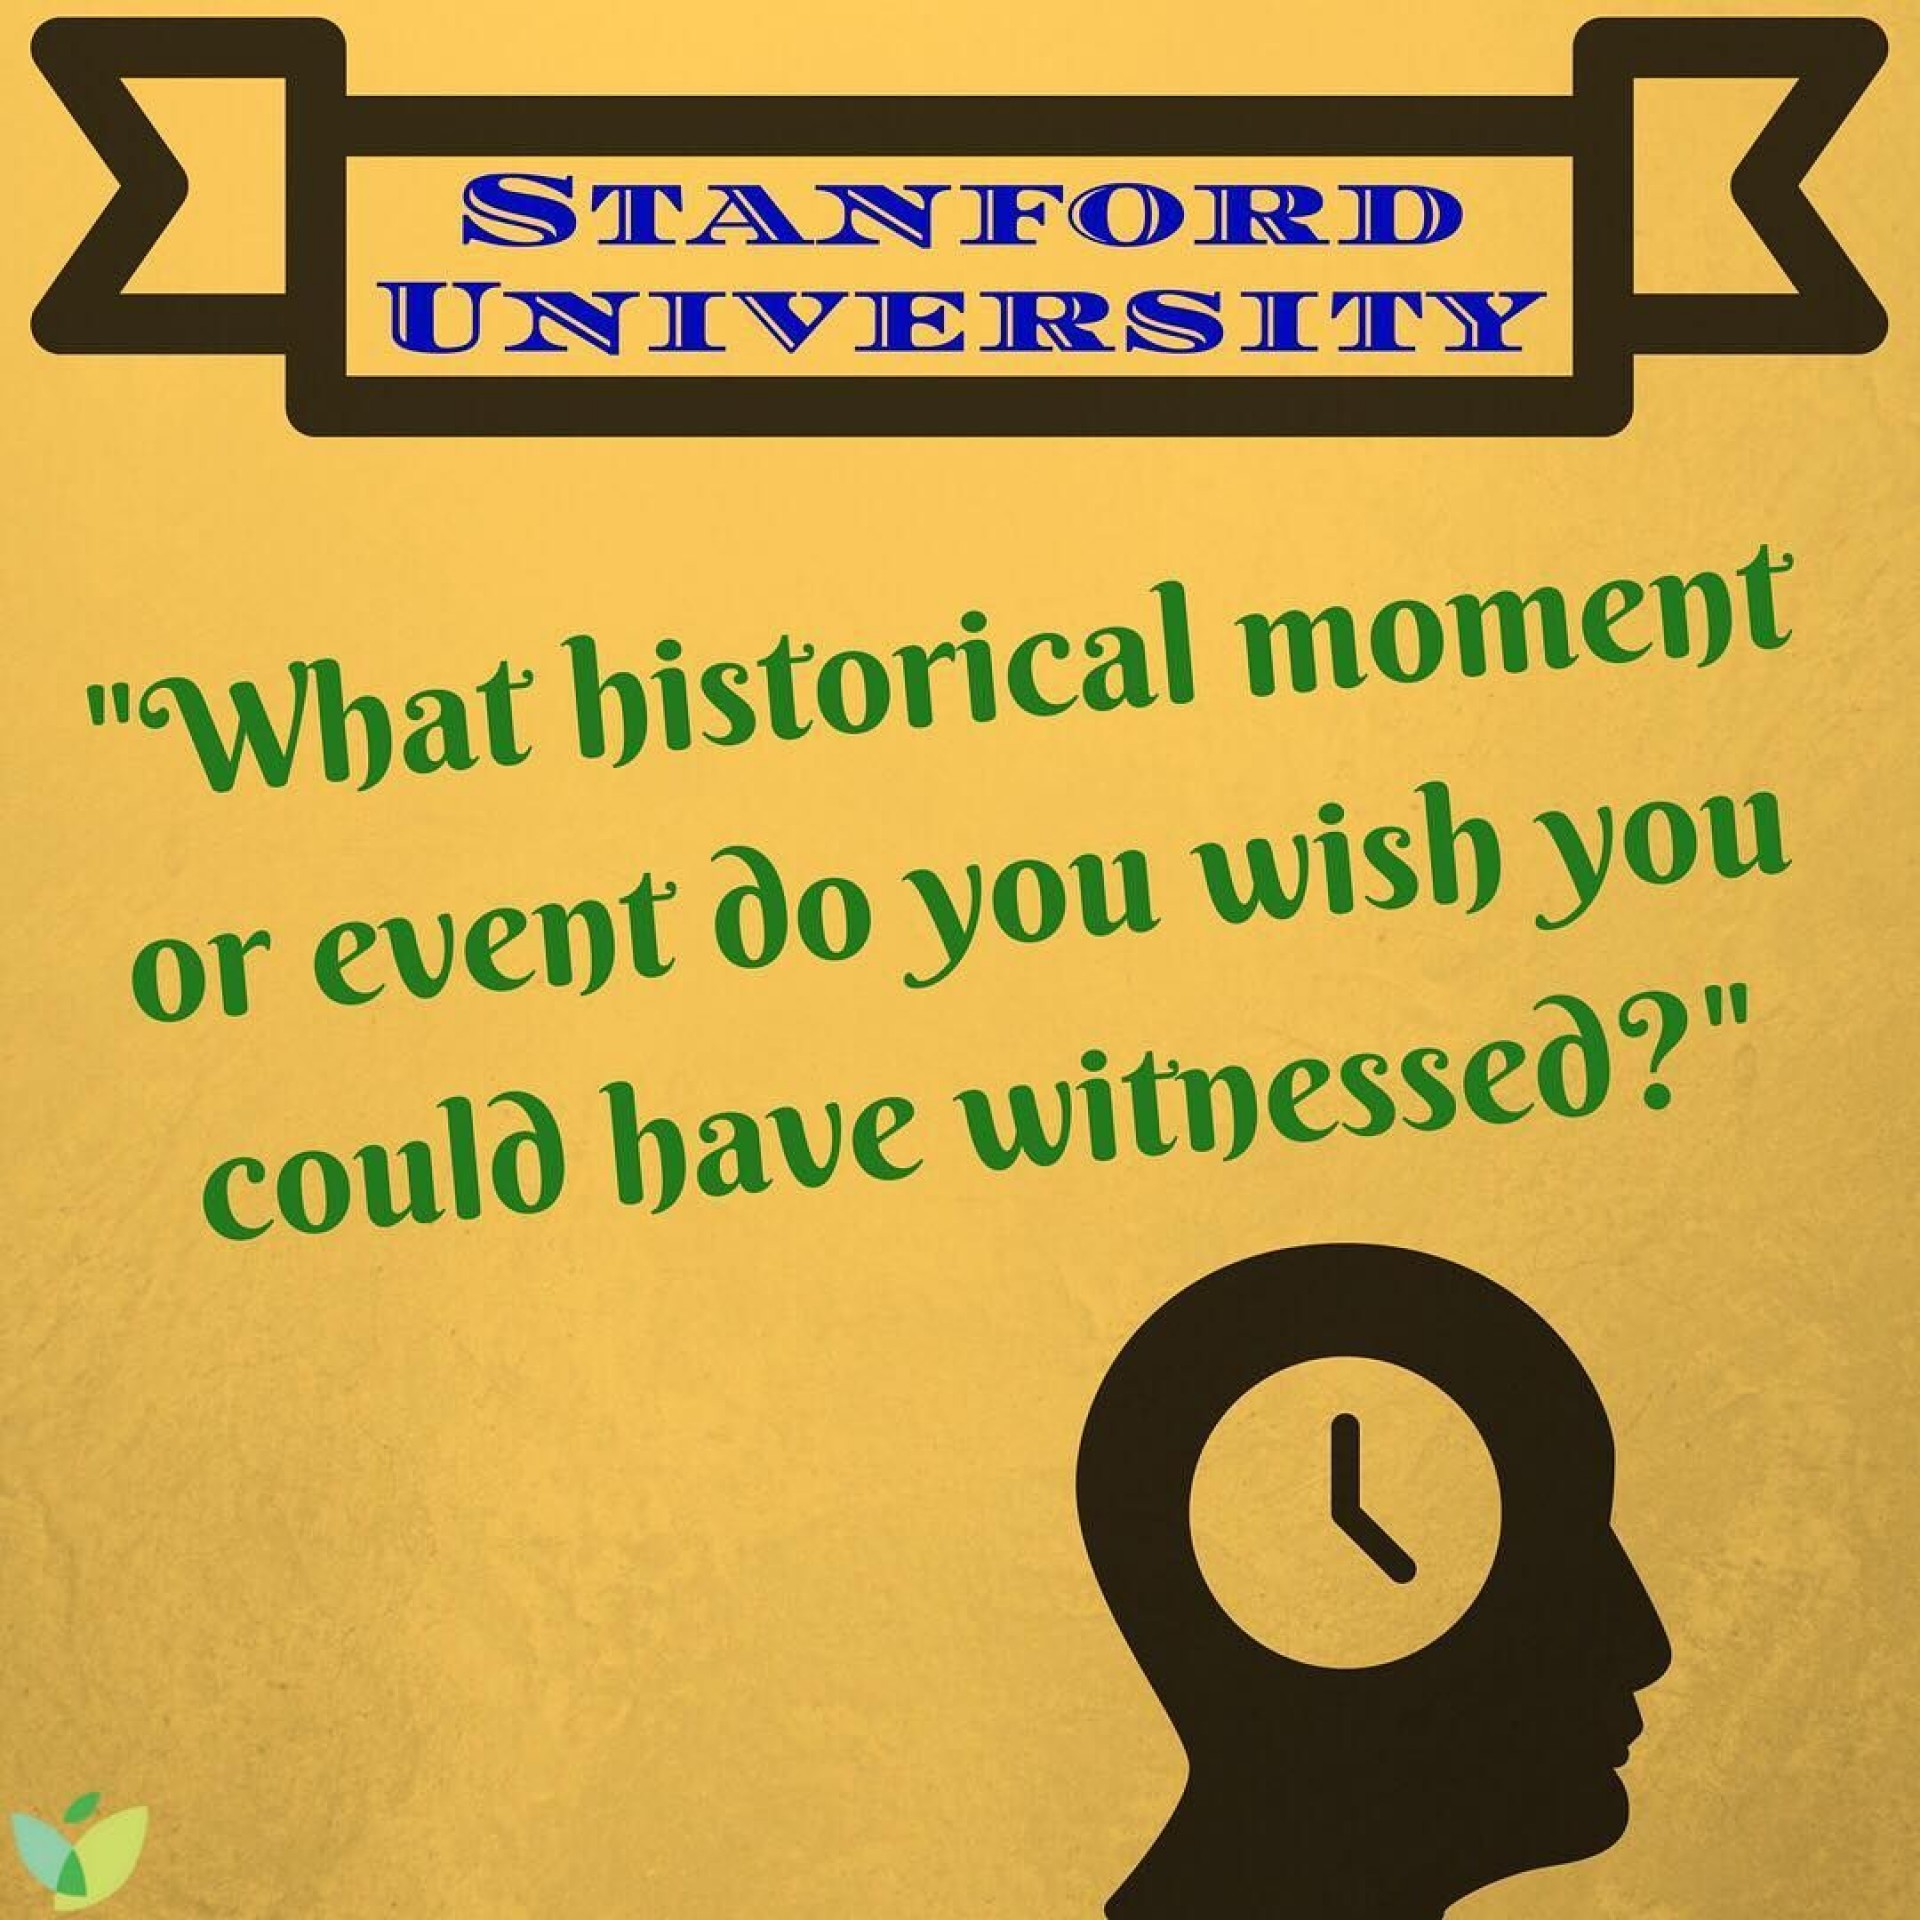 022 Stanford Essay Prompts Example Phenomenal Examples Application 1920